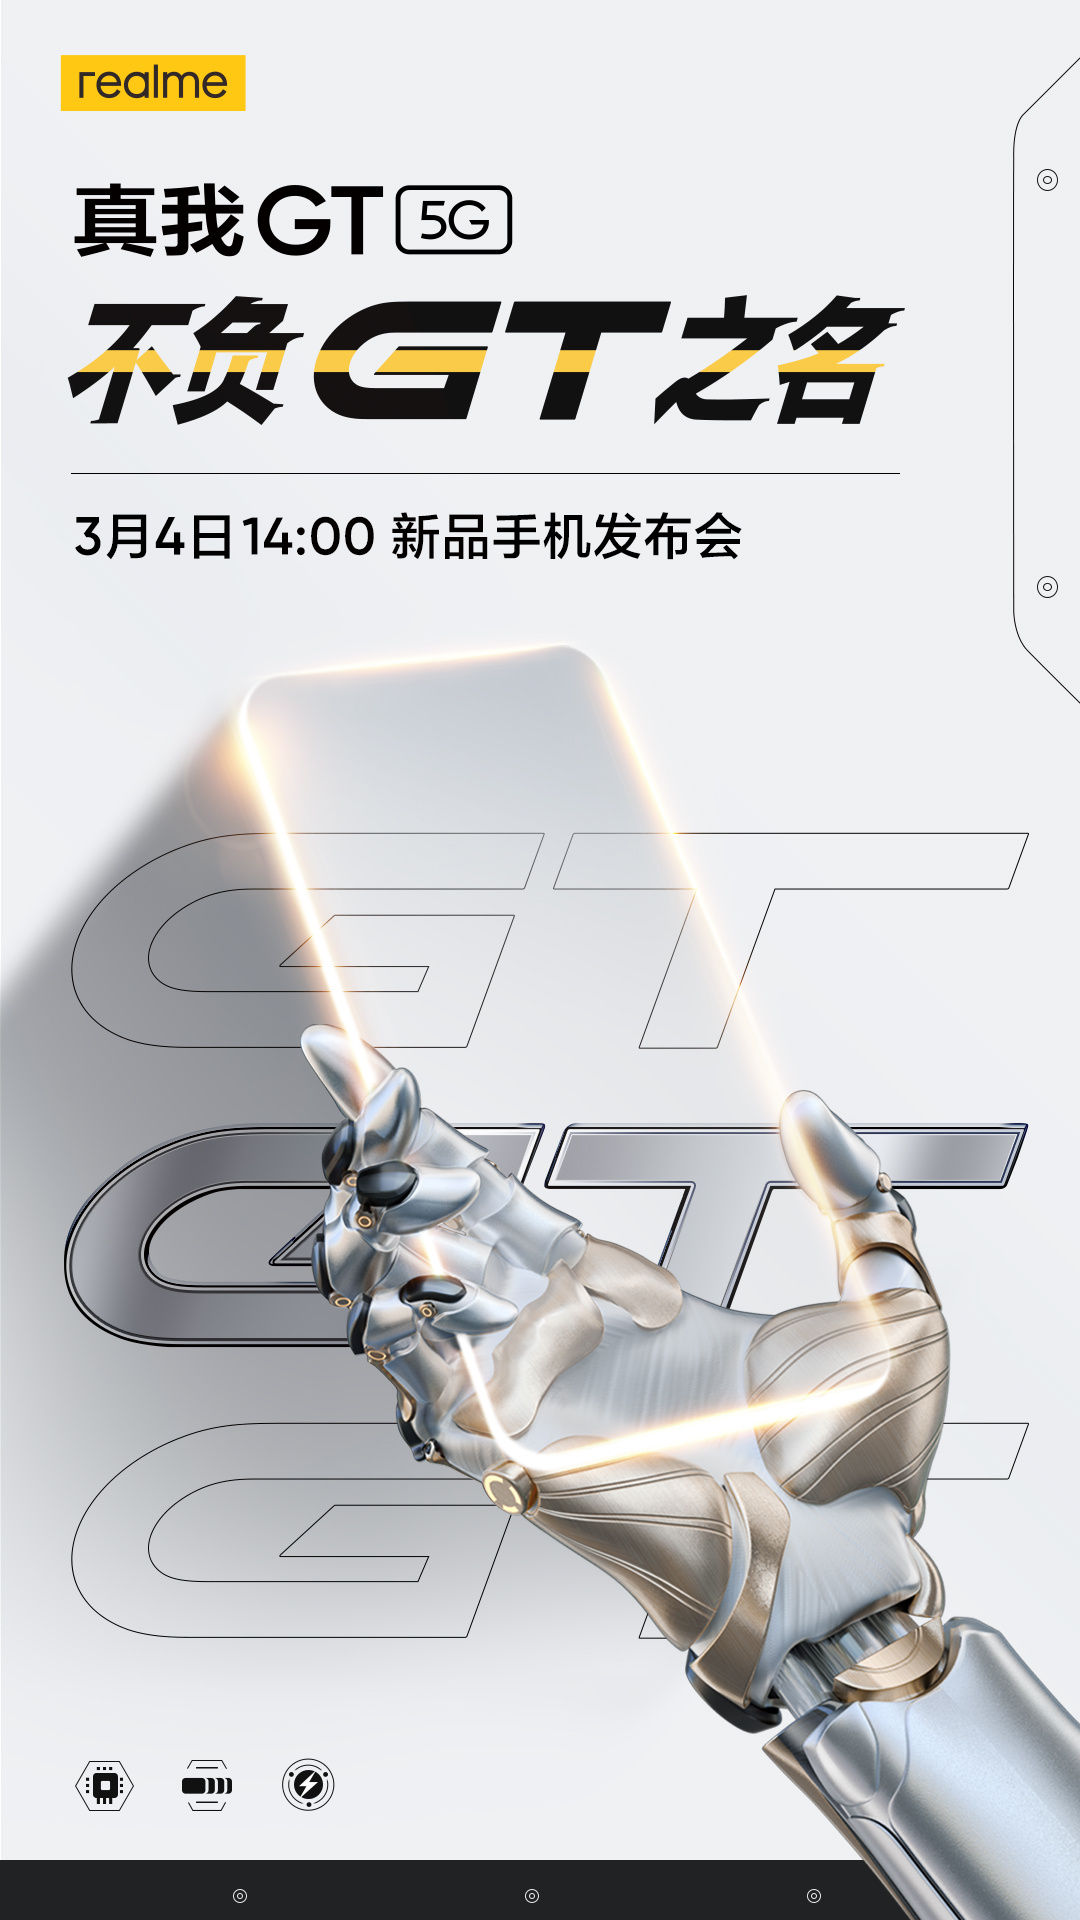 Realme GT 5G all set to launch in China on March 4th